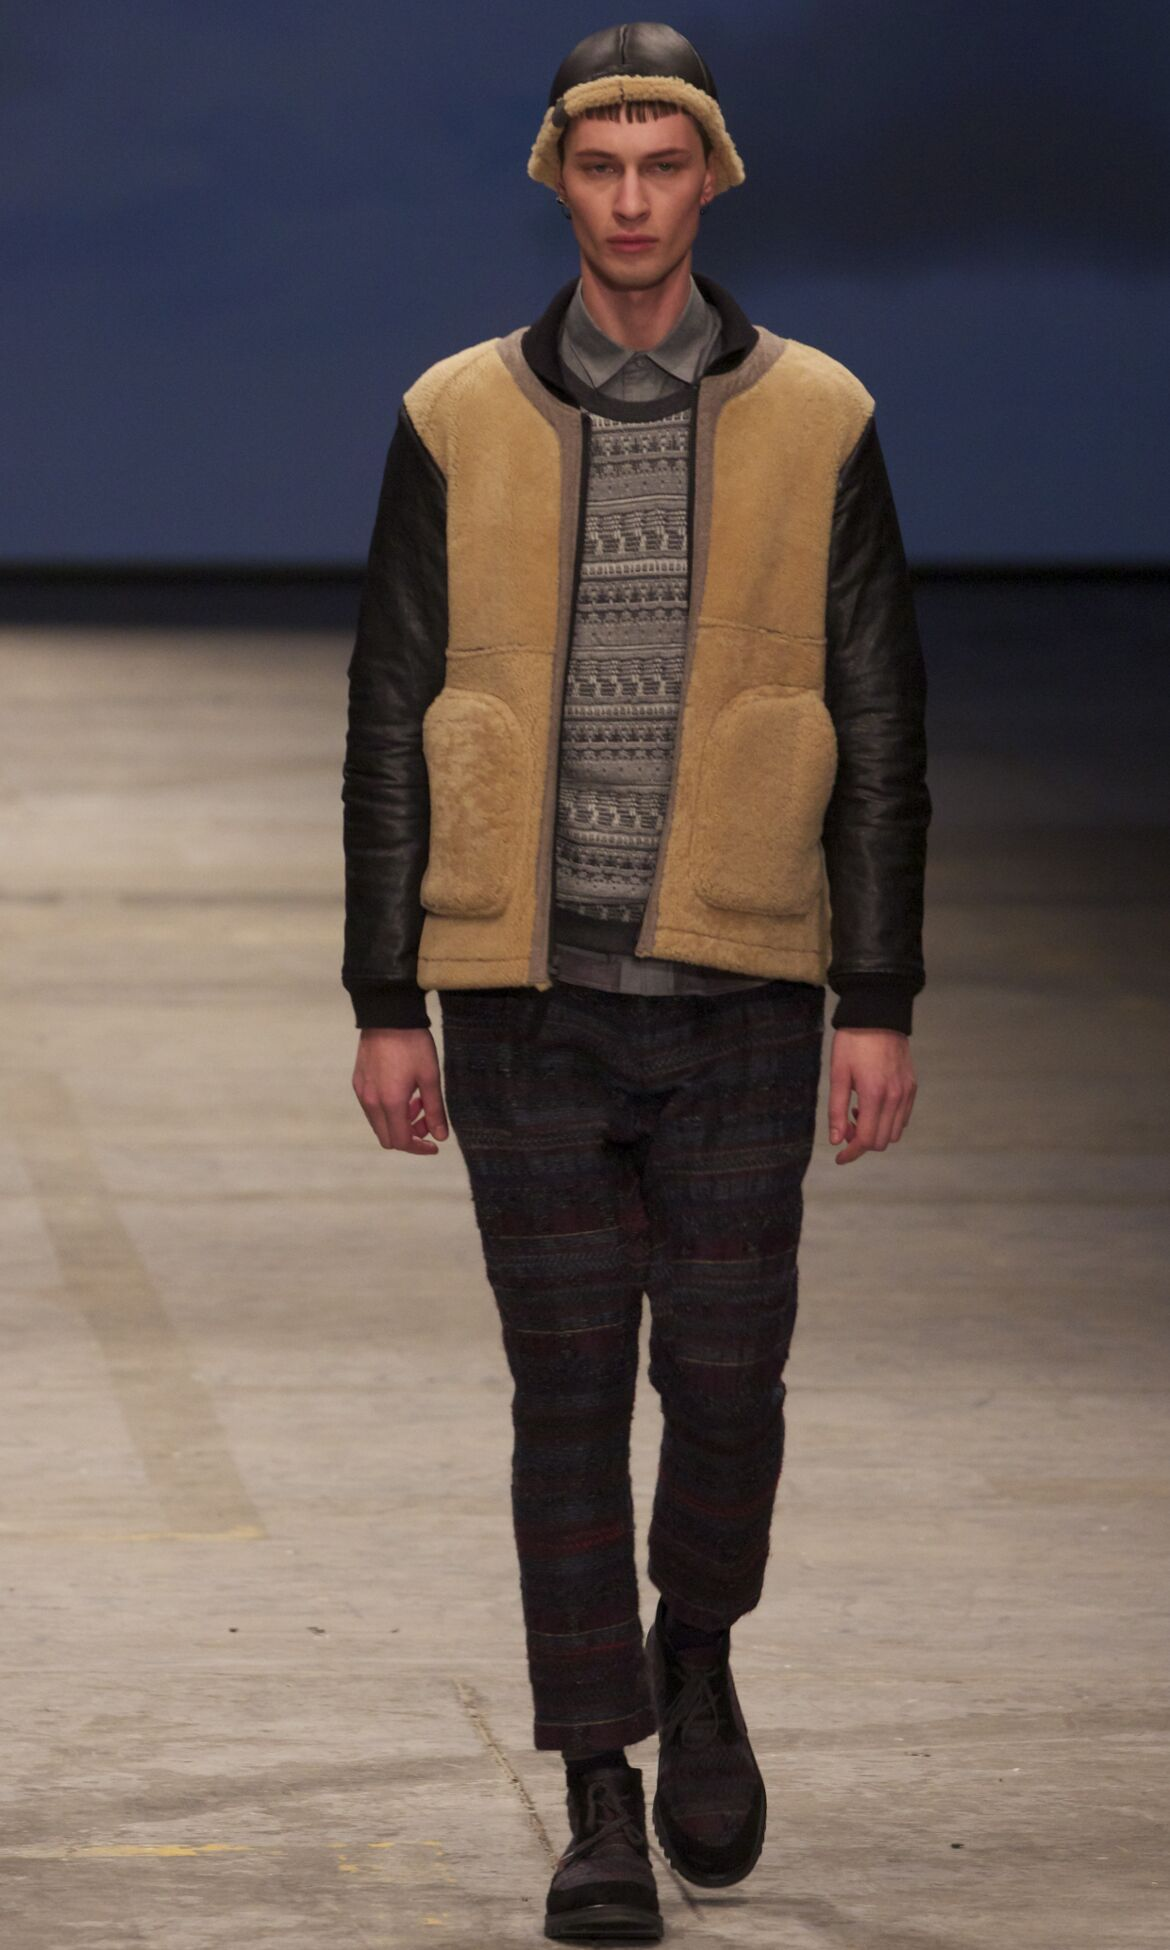 Catwalk White Mountaineering Fashion Show Winter 2013 Menswear